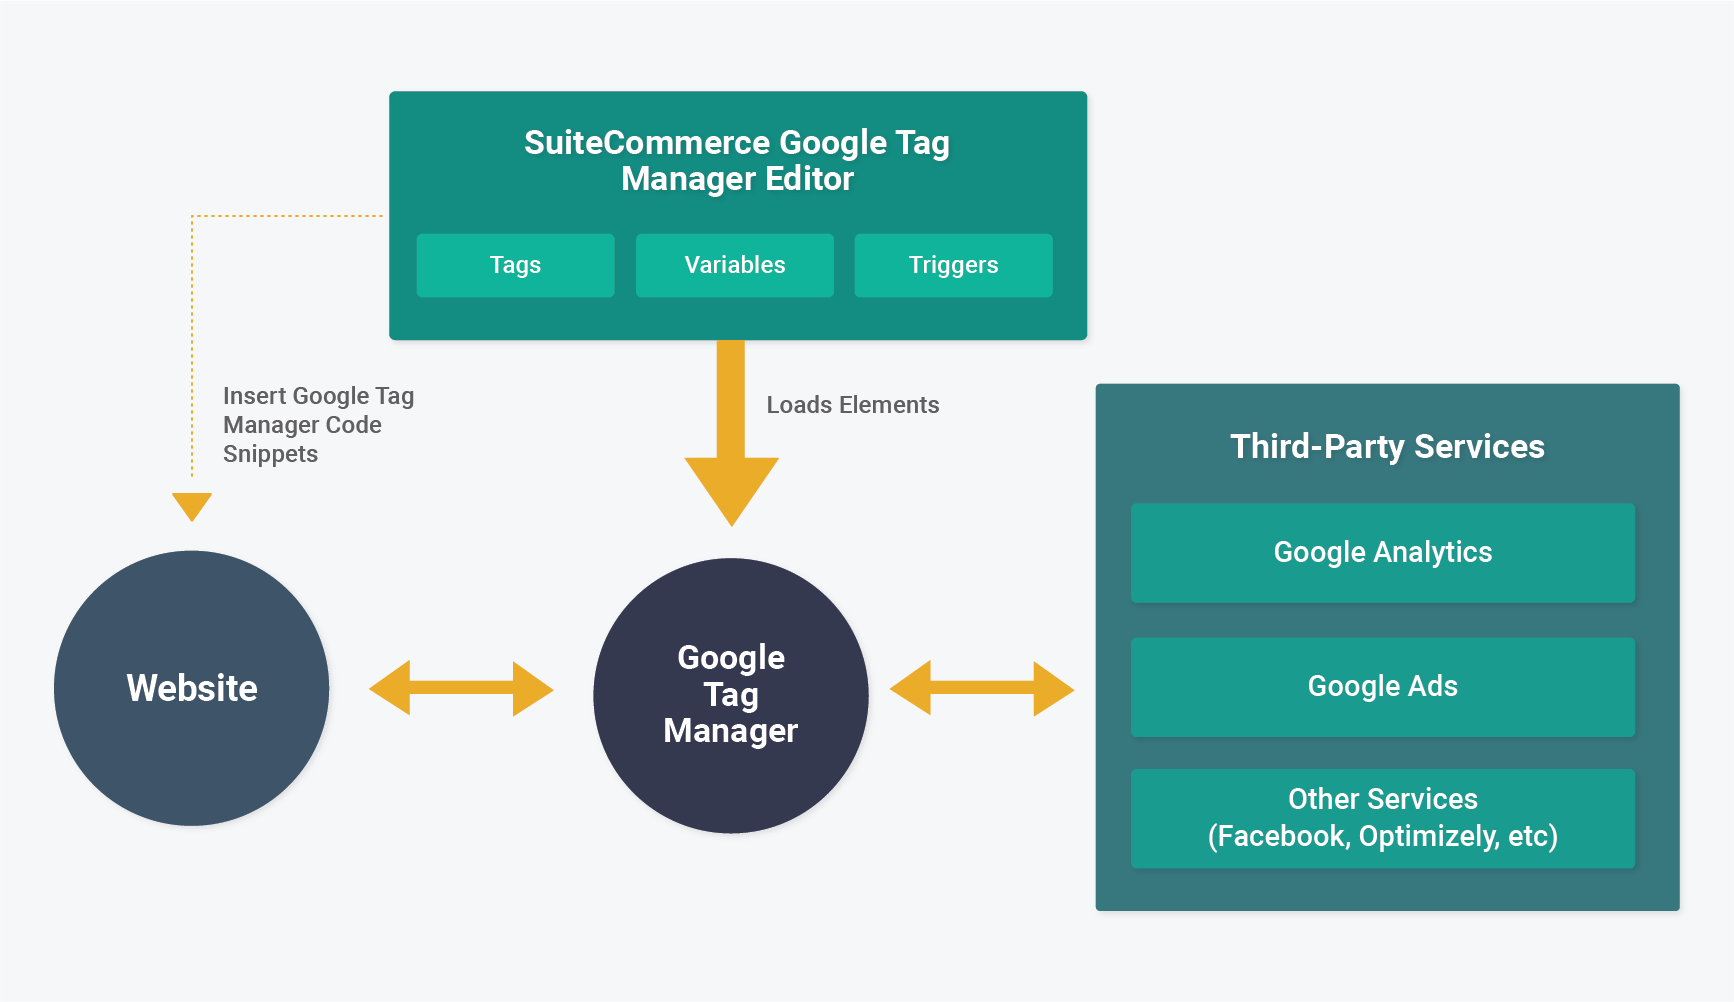 suitecommerce-google-tag-manager-editor-flow